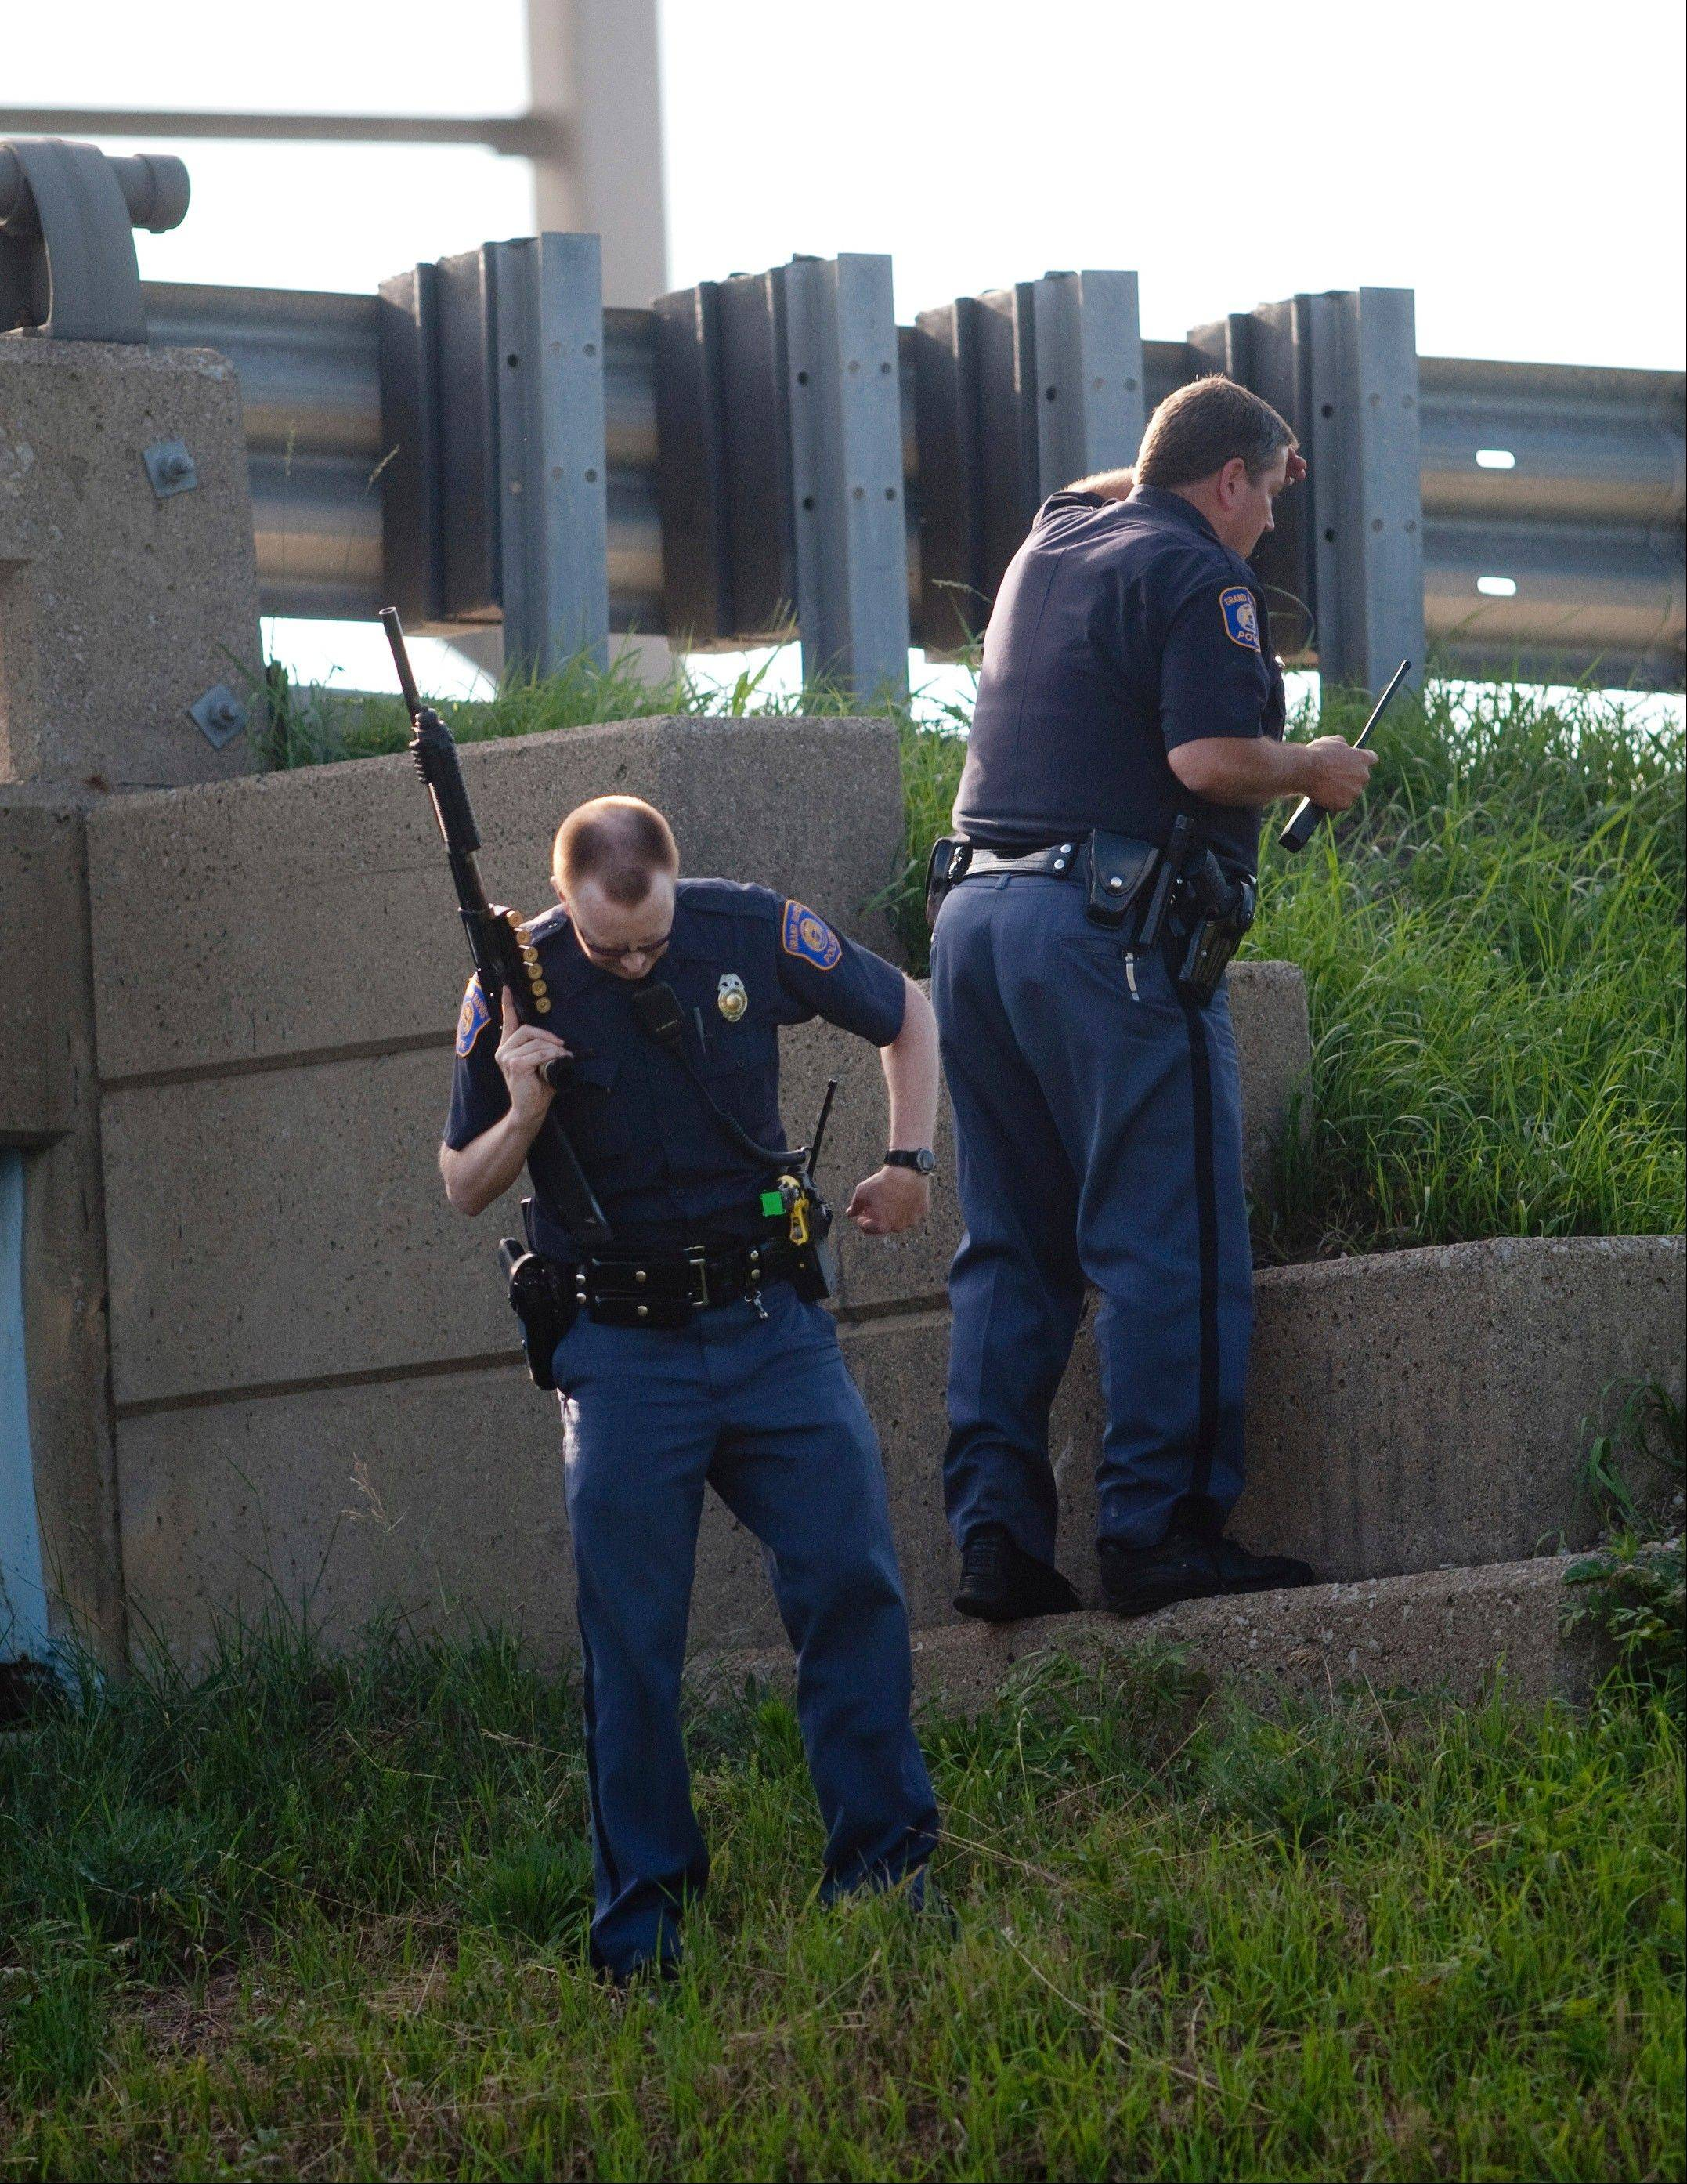 Police officers check the embankment alongside Interstate 131 northbound in Grand Rapids, Mich., after a high-speed car chase in pursuit of a shooting spree suspect, Thursday, July 7, 2011.